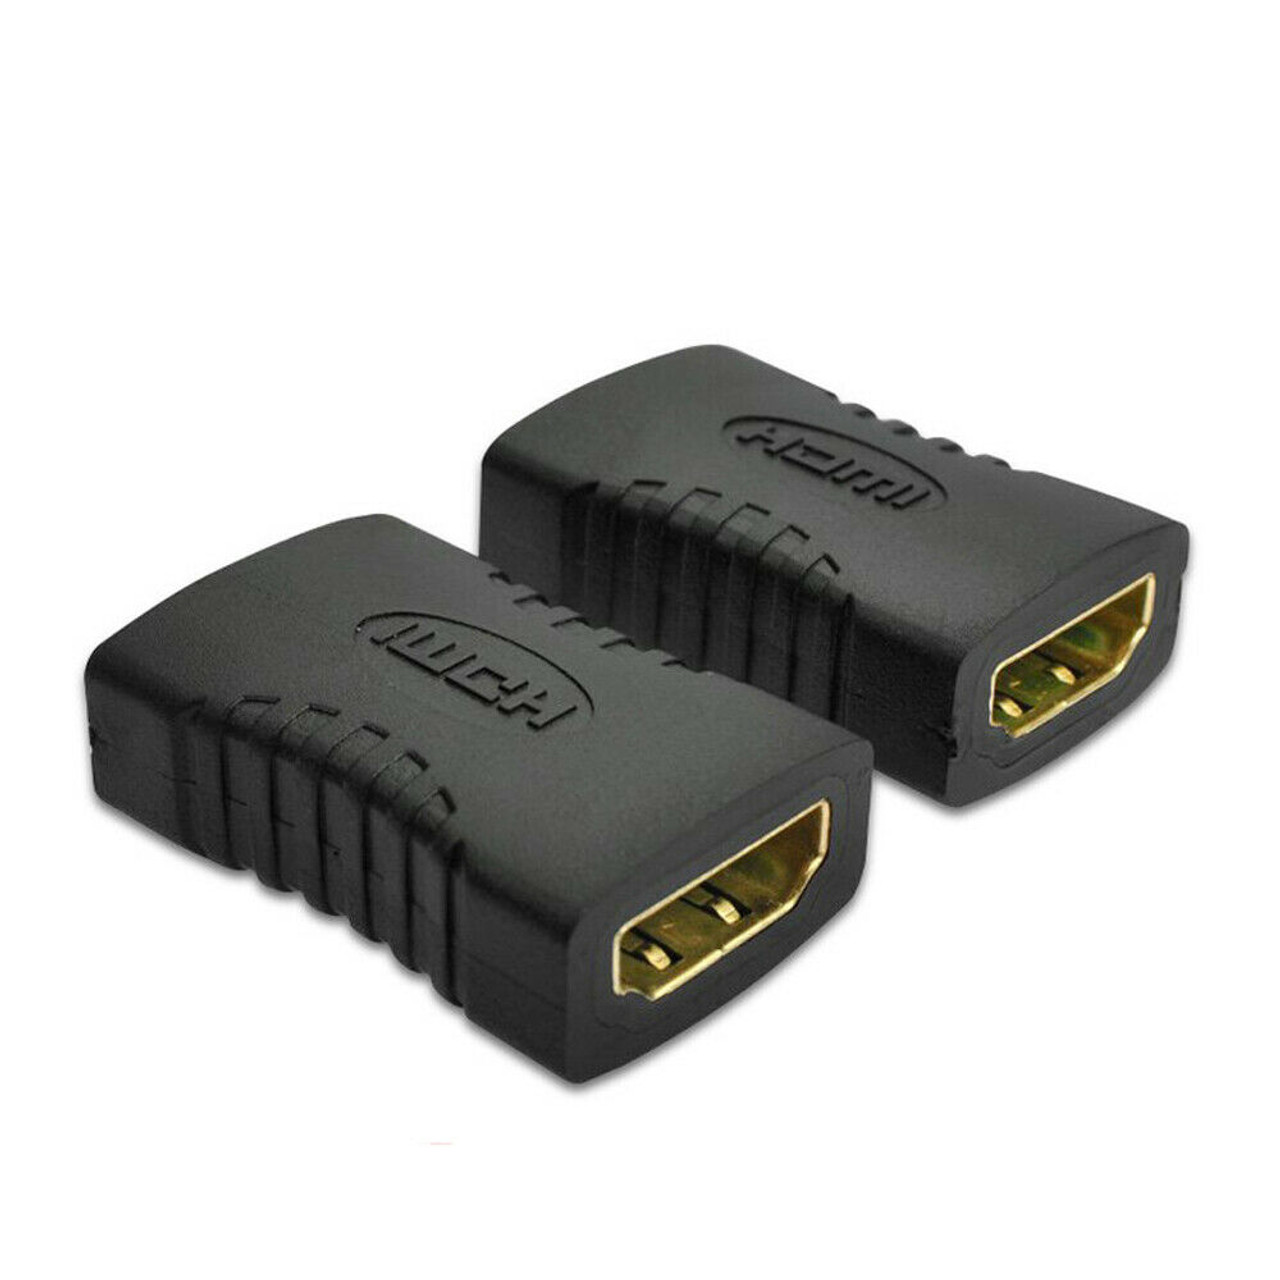 HDMI Female to Female Coupler (2-Pack)